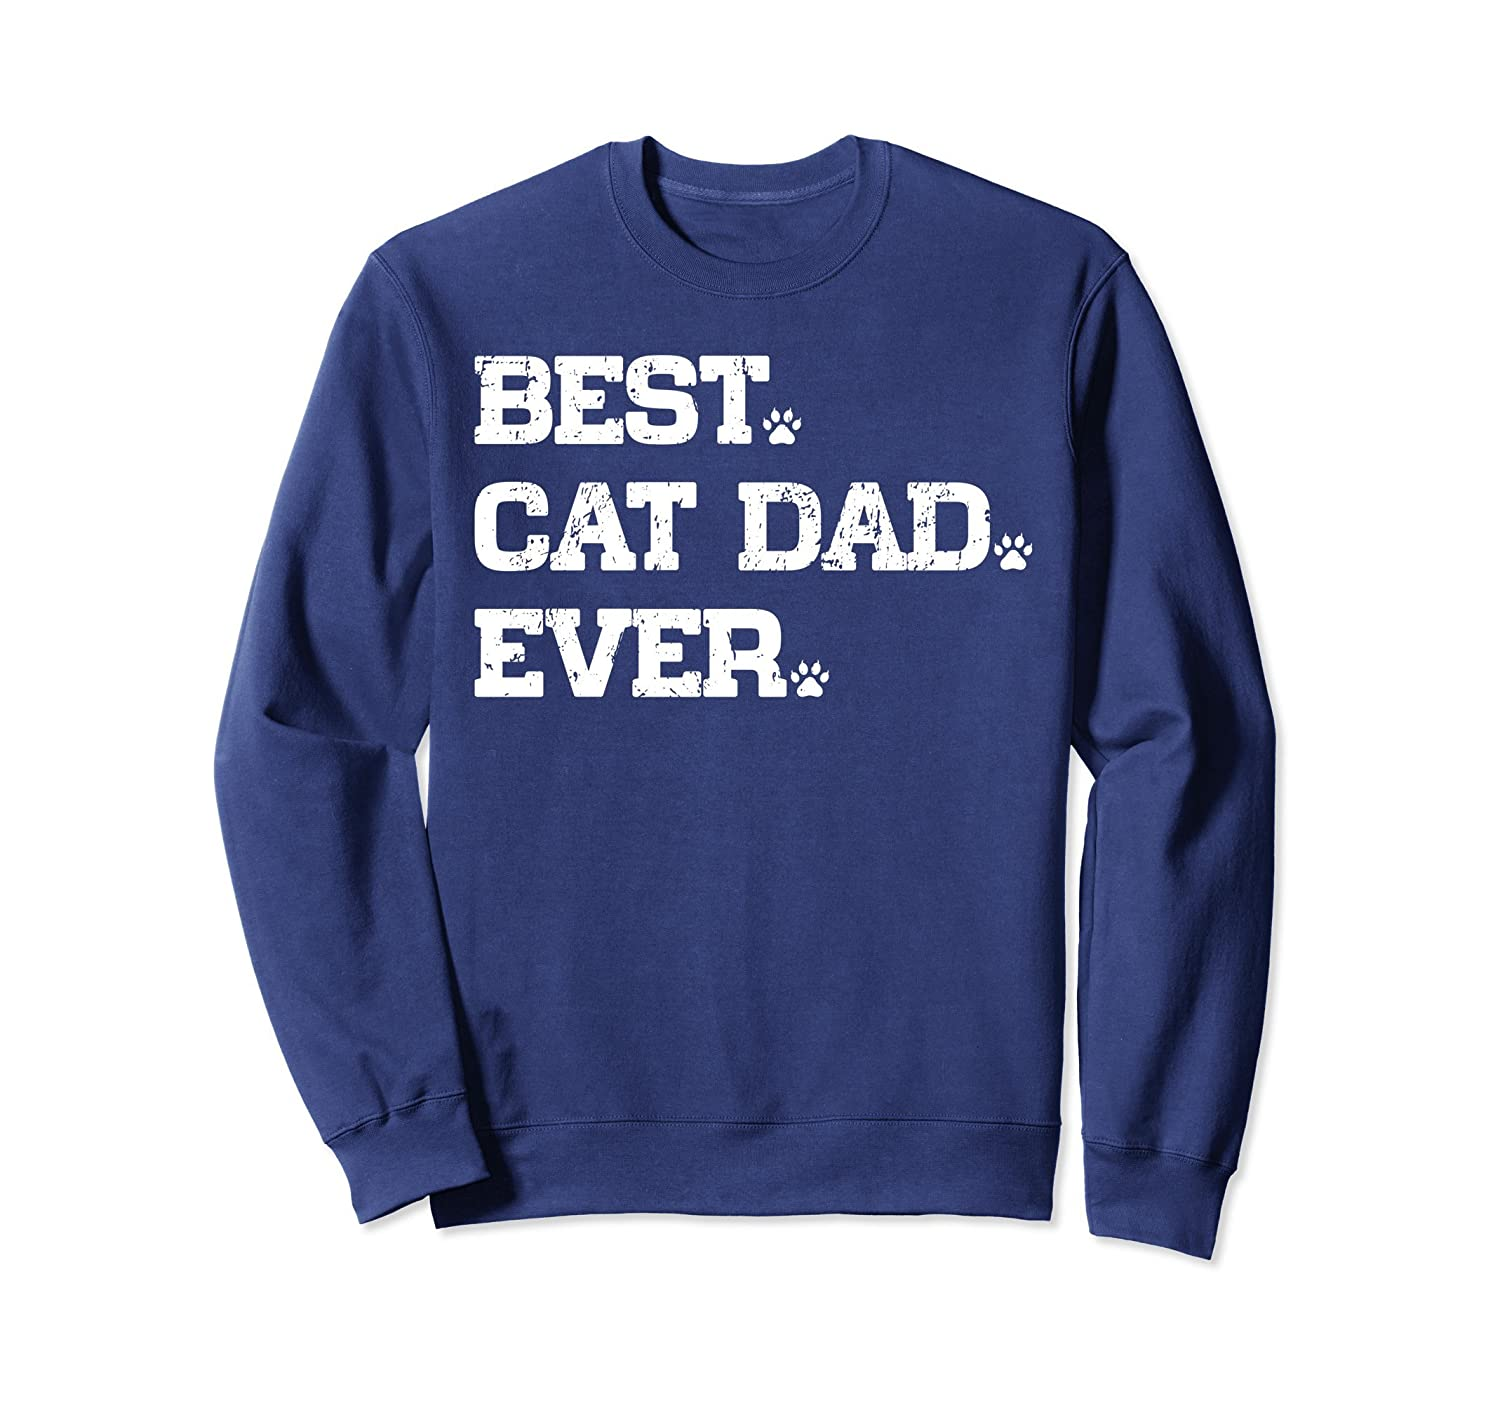 a6af24bff Amazon.com: Best Cat Dad Ever Funny Cat Paws Lover Gift Sweatshirt: Clothing